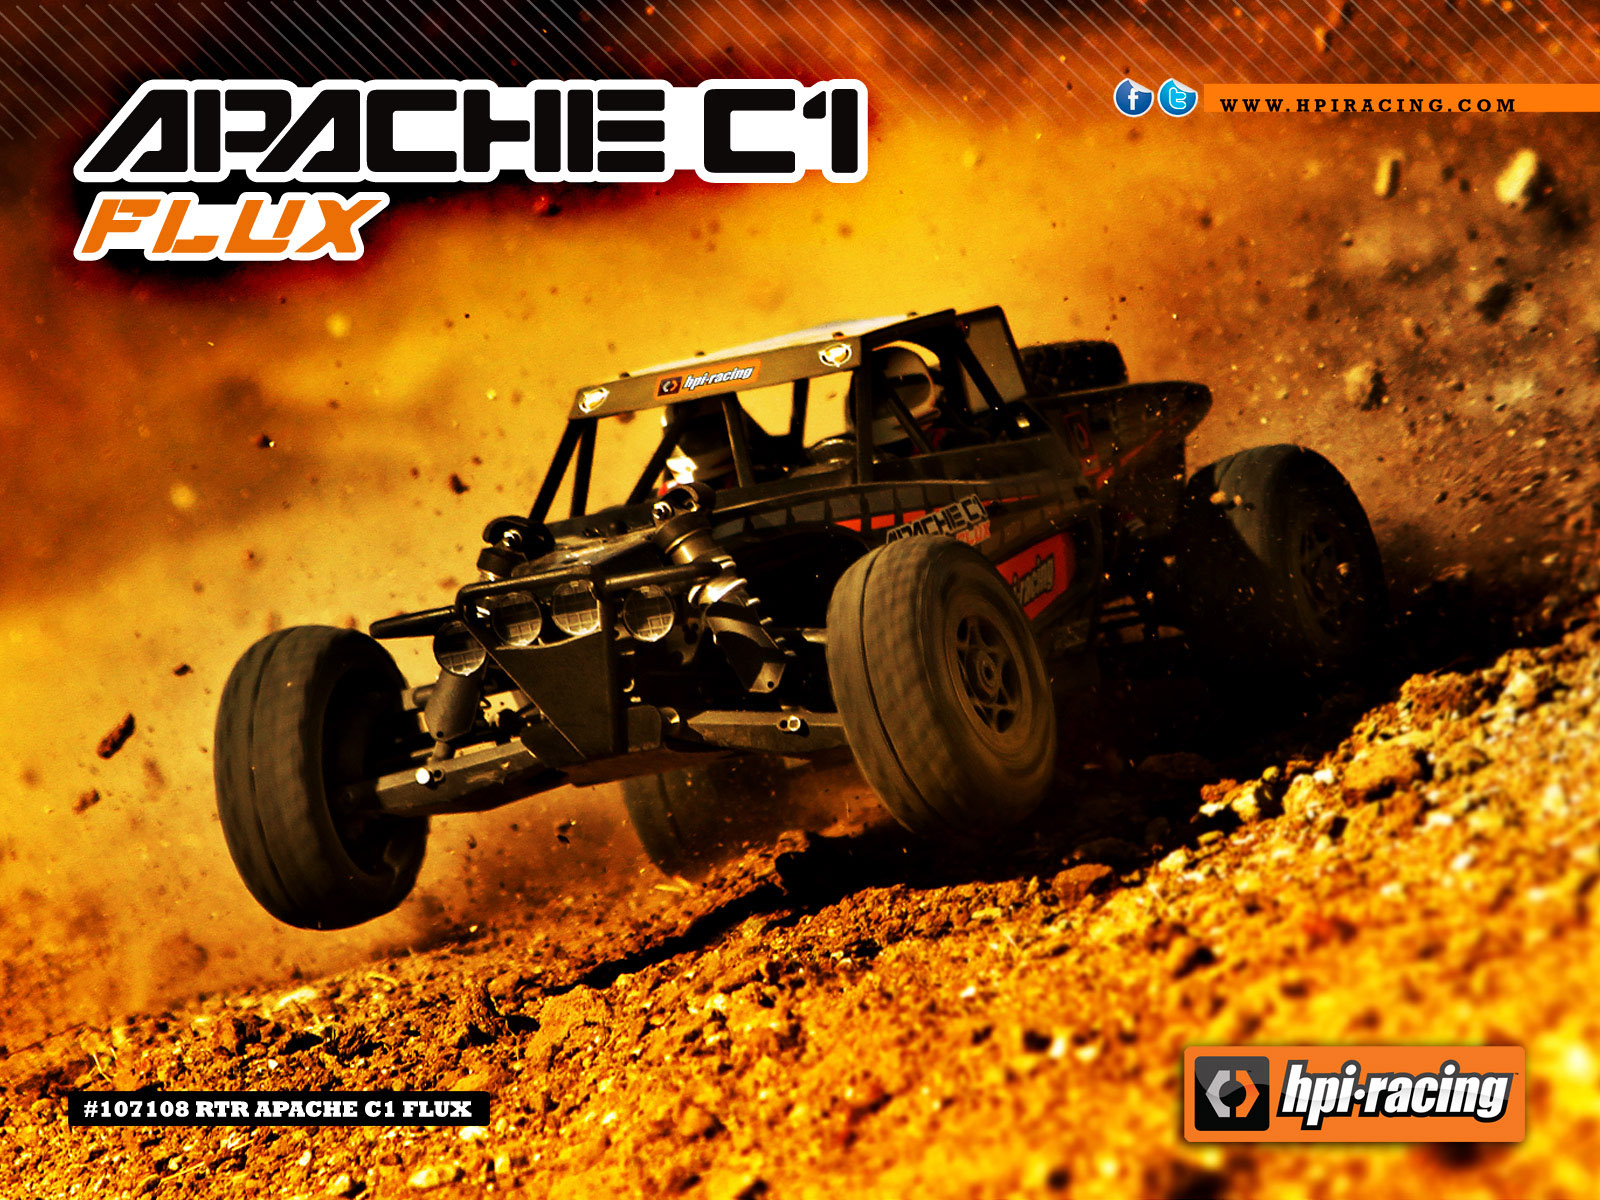 Free Download Radio Control Car Wallpaper 1600x1200 For Your Desktop Mobile Tablet Explore 47 Rc Cars Wallpapers Rc Helicopter Wallpaper Traxxas Wallpaper Rc Airplane Wallpaper